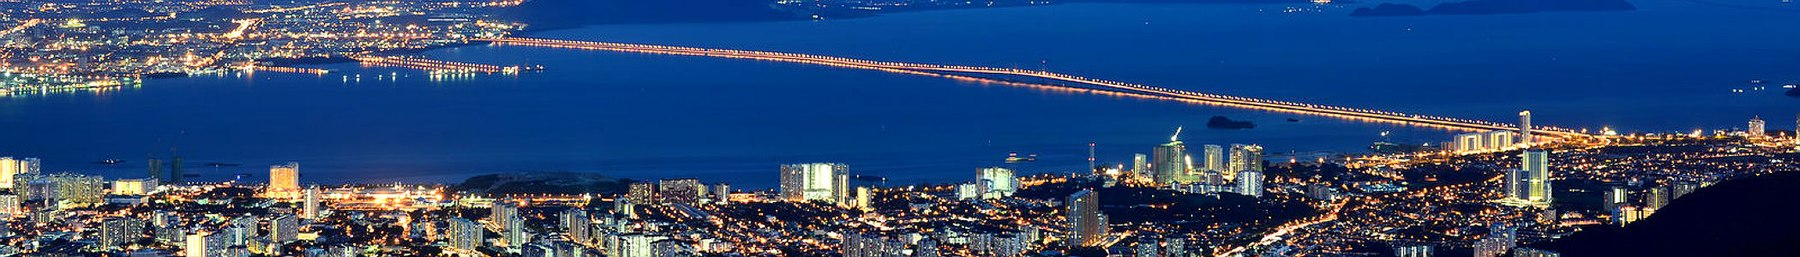 Penang Bridge connecting the Island and Mainland